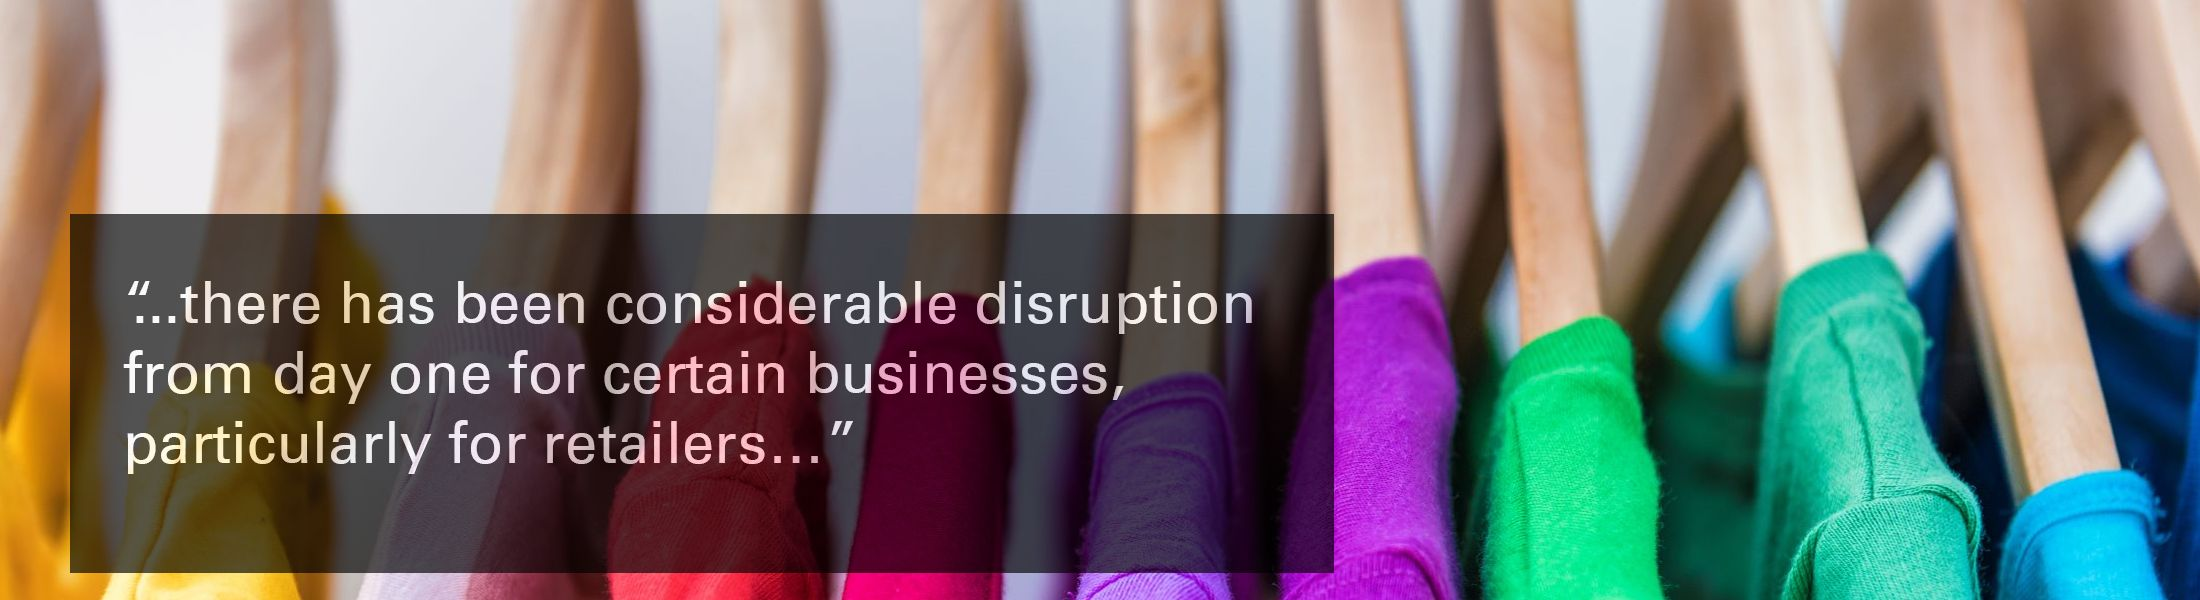 "Image of hangers holding a variety of coloured tshirts, with text overlaid, ""there has been considerable disruption from day one for certain businesses, particularly for retailers"""